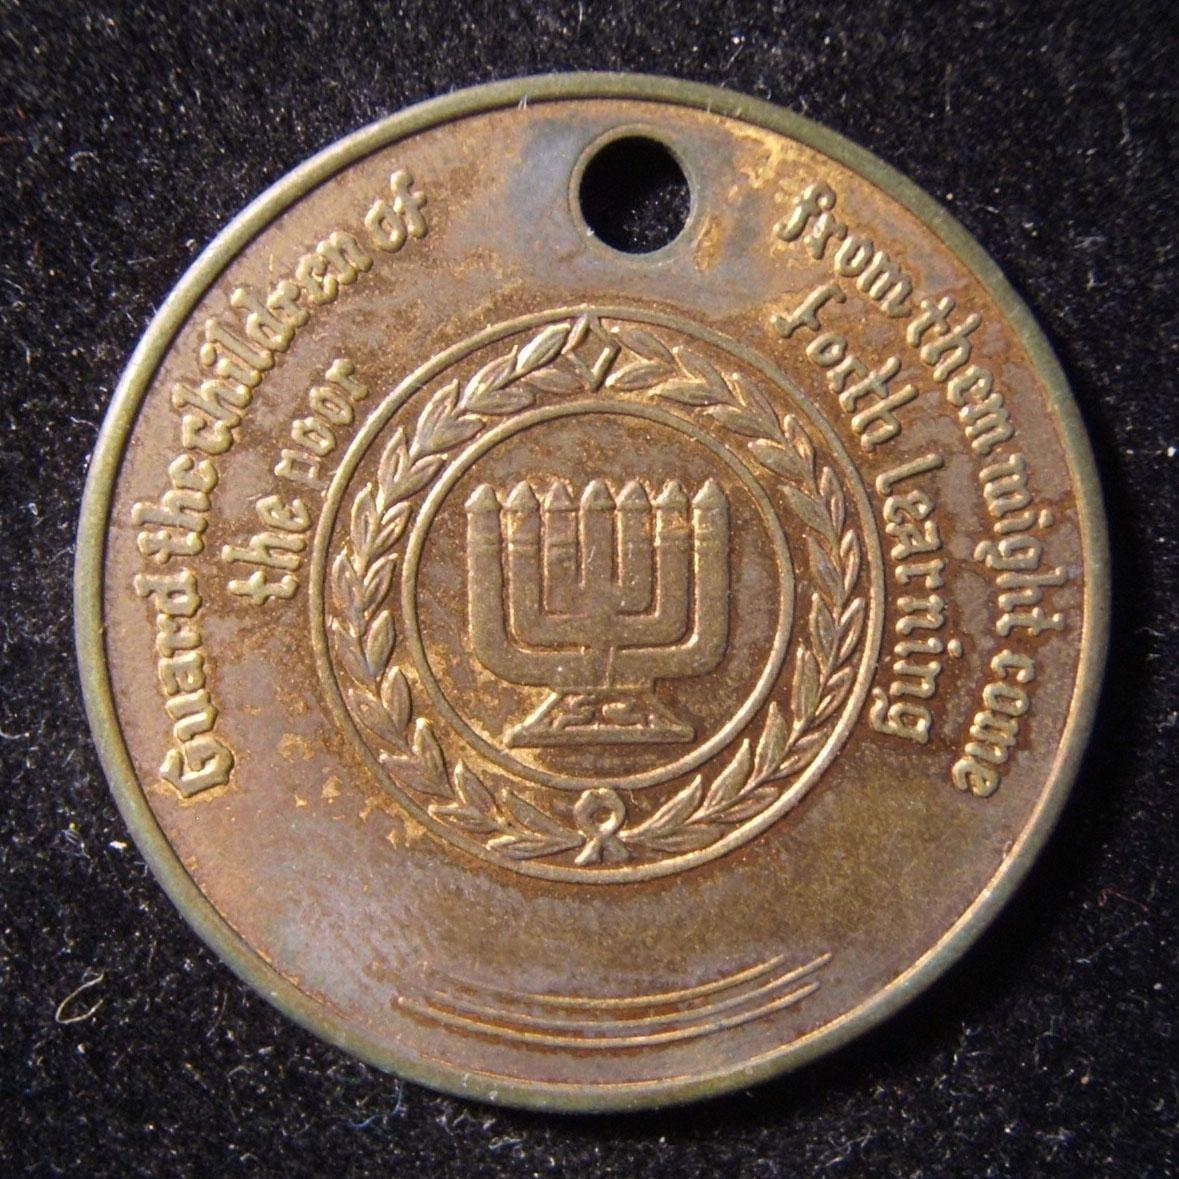 US: Jewish charity / Good luck token with legend